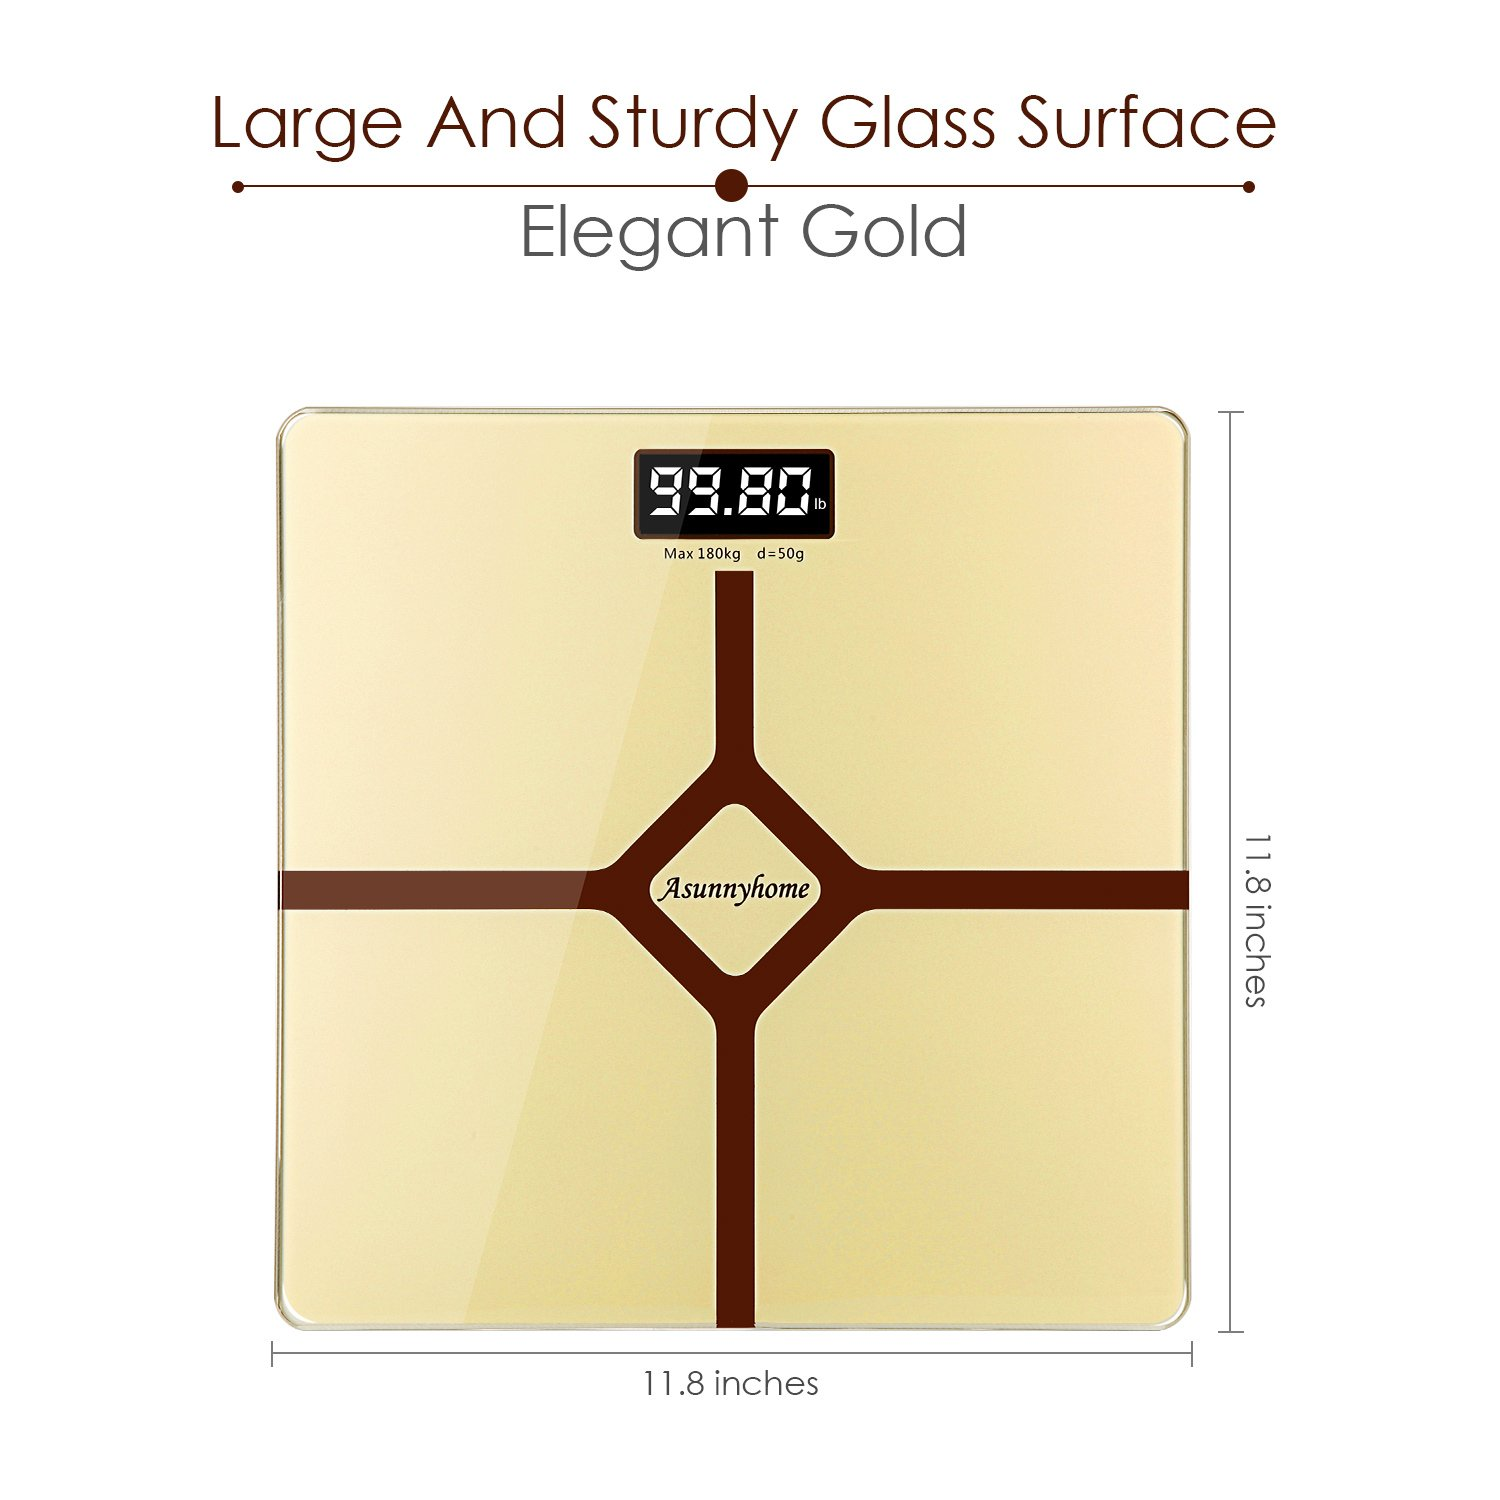 Digital Bathroom Scale with Step-On Function - Batteries Included, 400 pounds- Elegant Gold